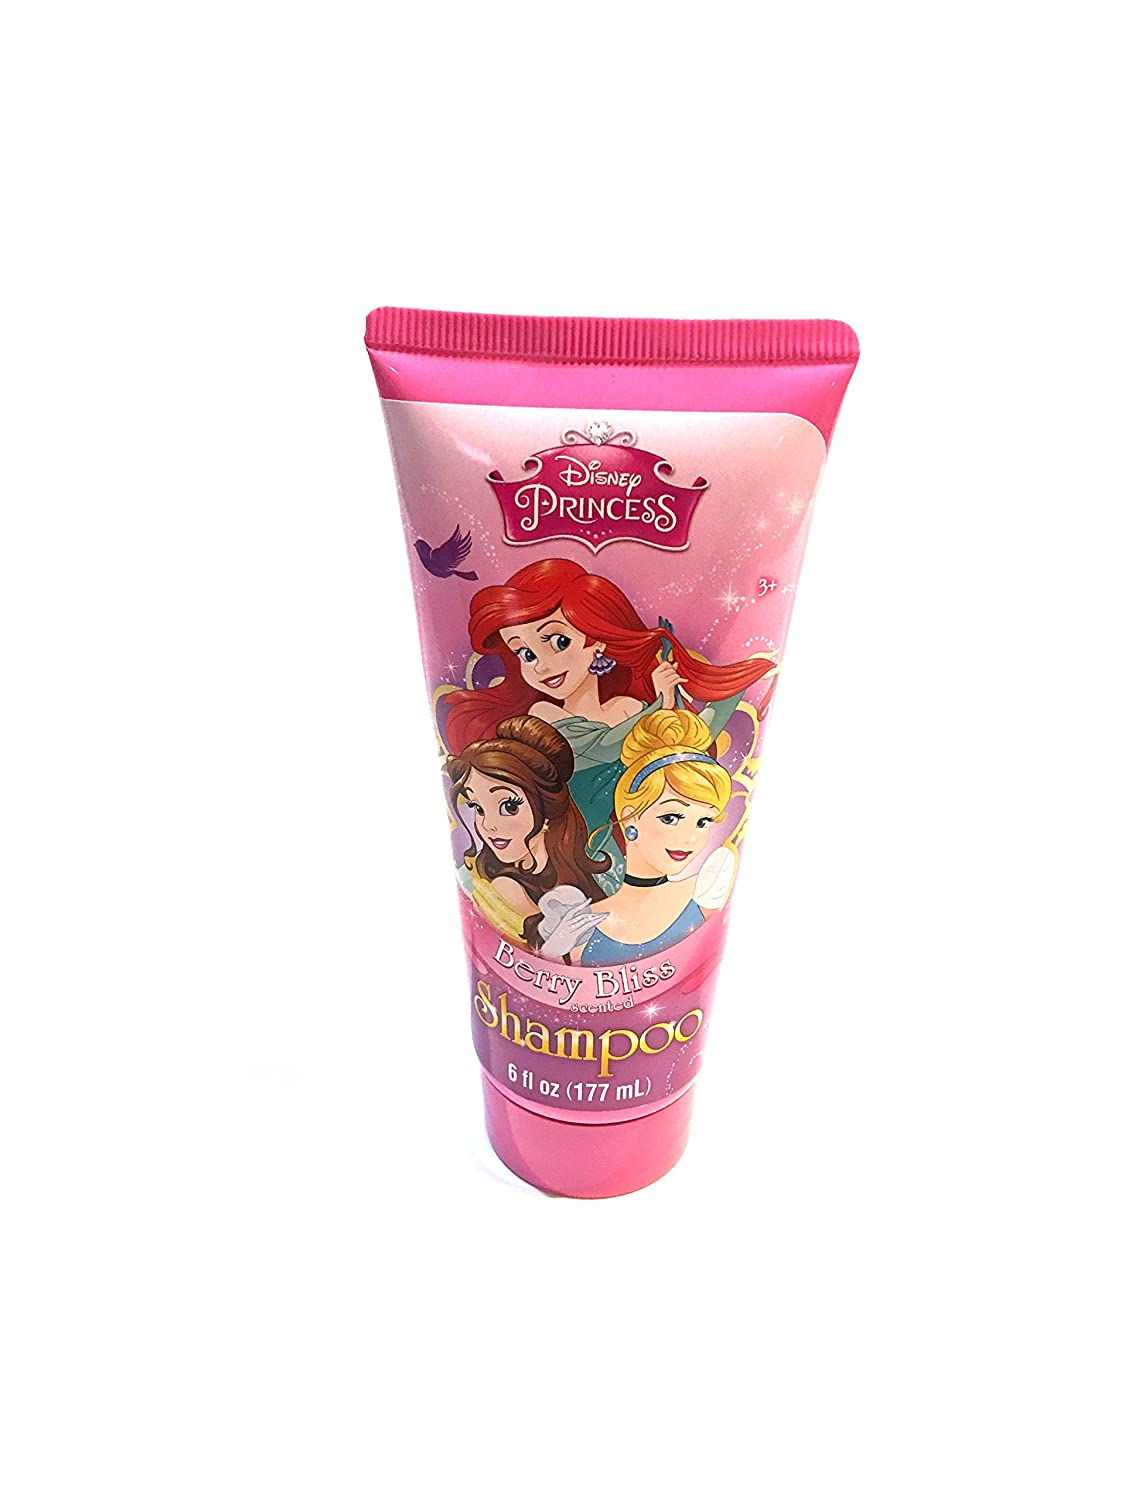 Disney Princess Berry Bliss Scented Shampoo for clChildren Mzb